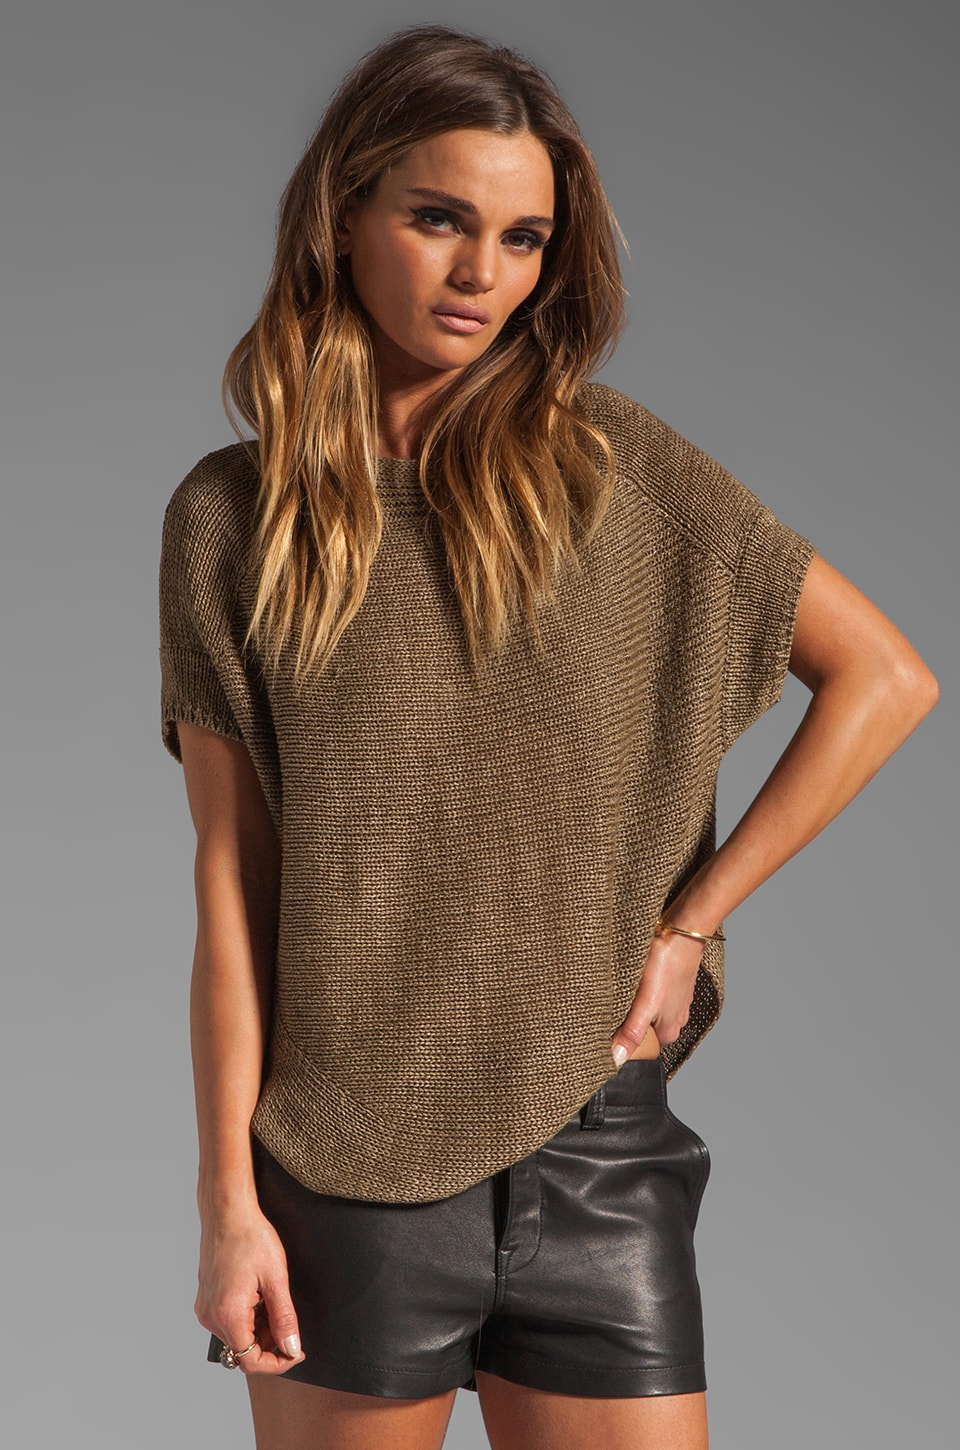 Vince Short Sleeve Boat Neck Sweater in Sage